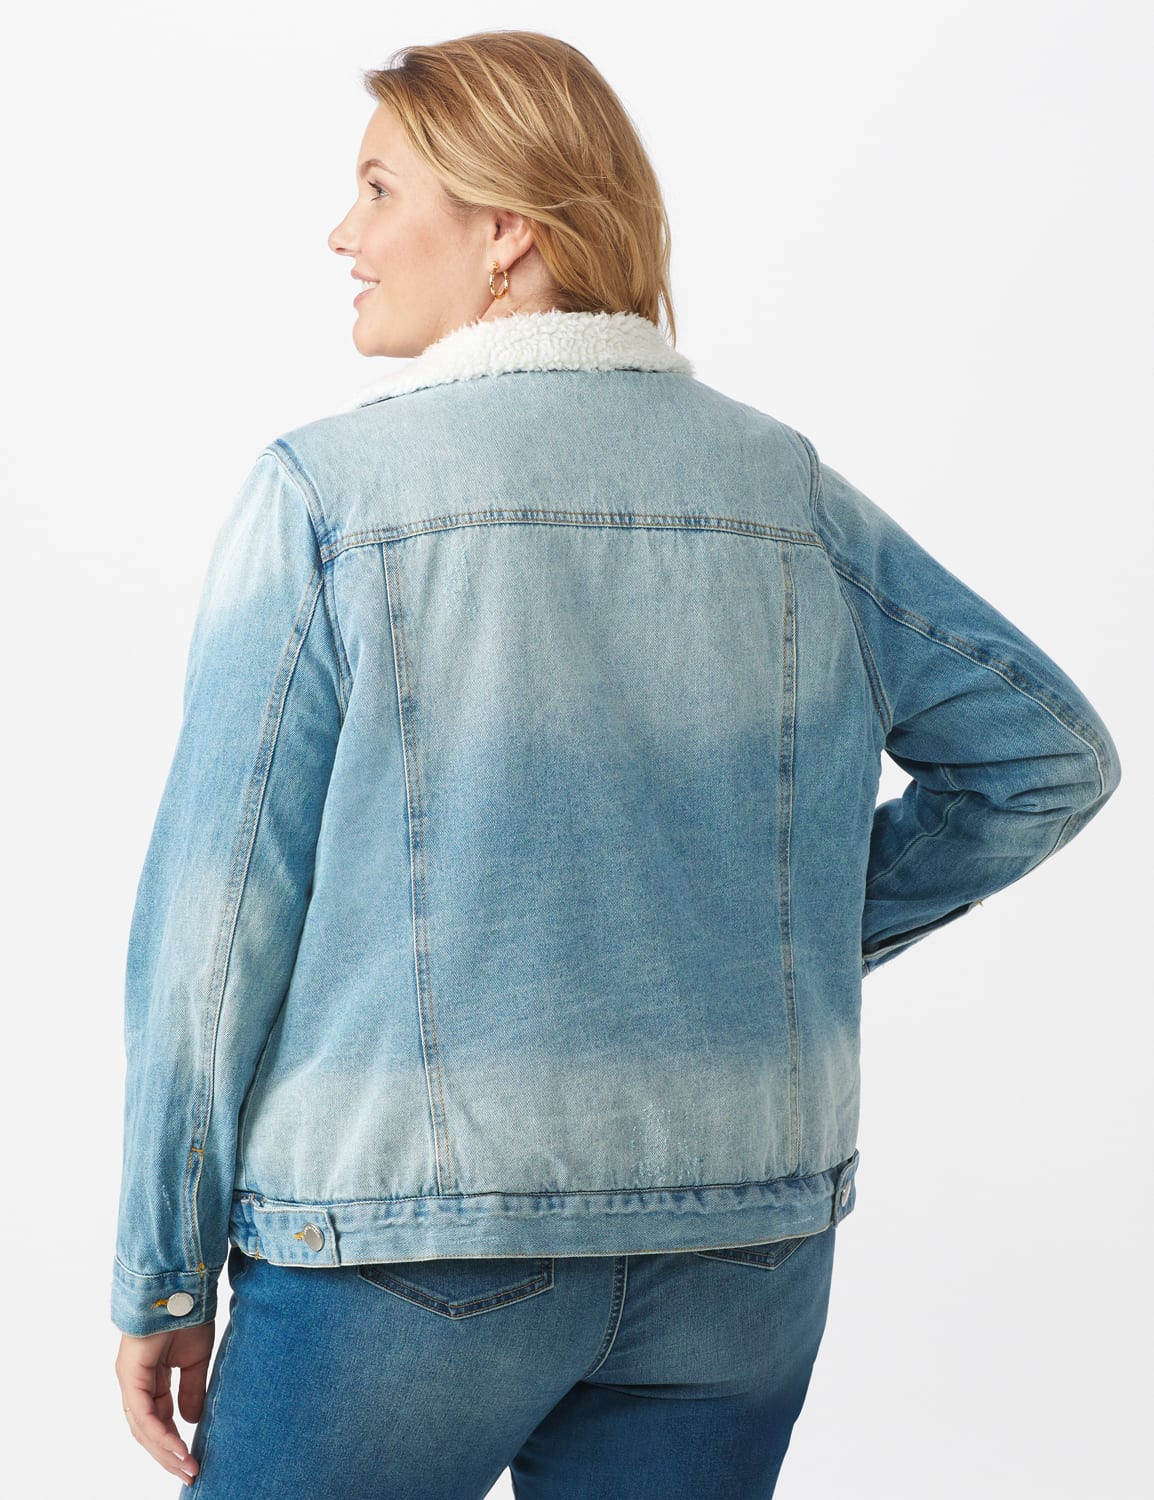 Denim Trucker Jacket with Sherpa Lining - Light wash - Back